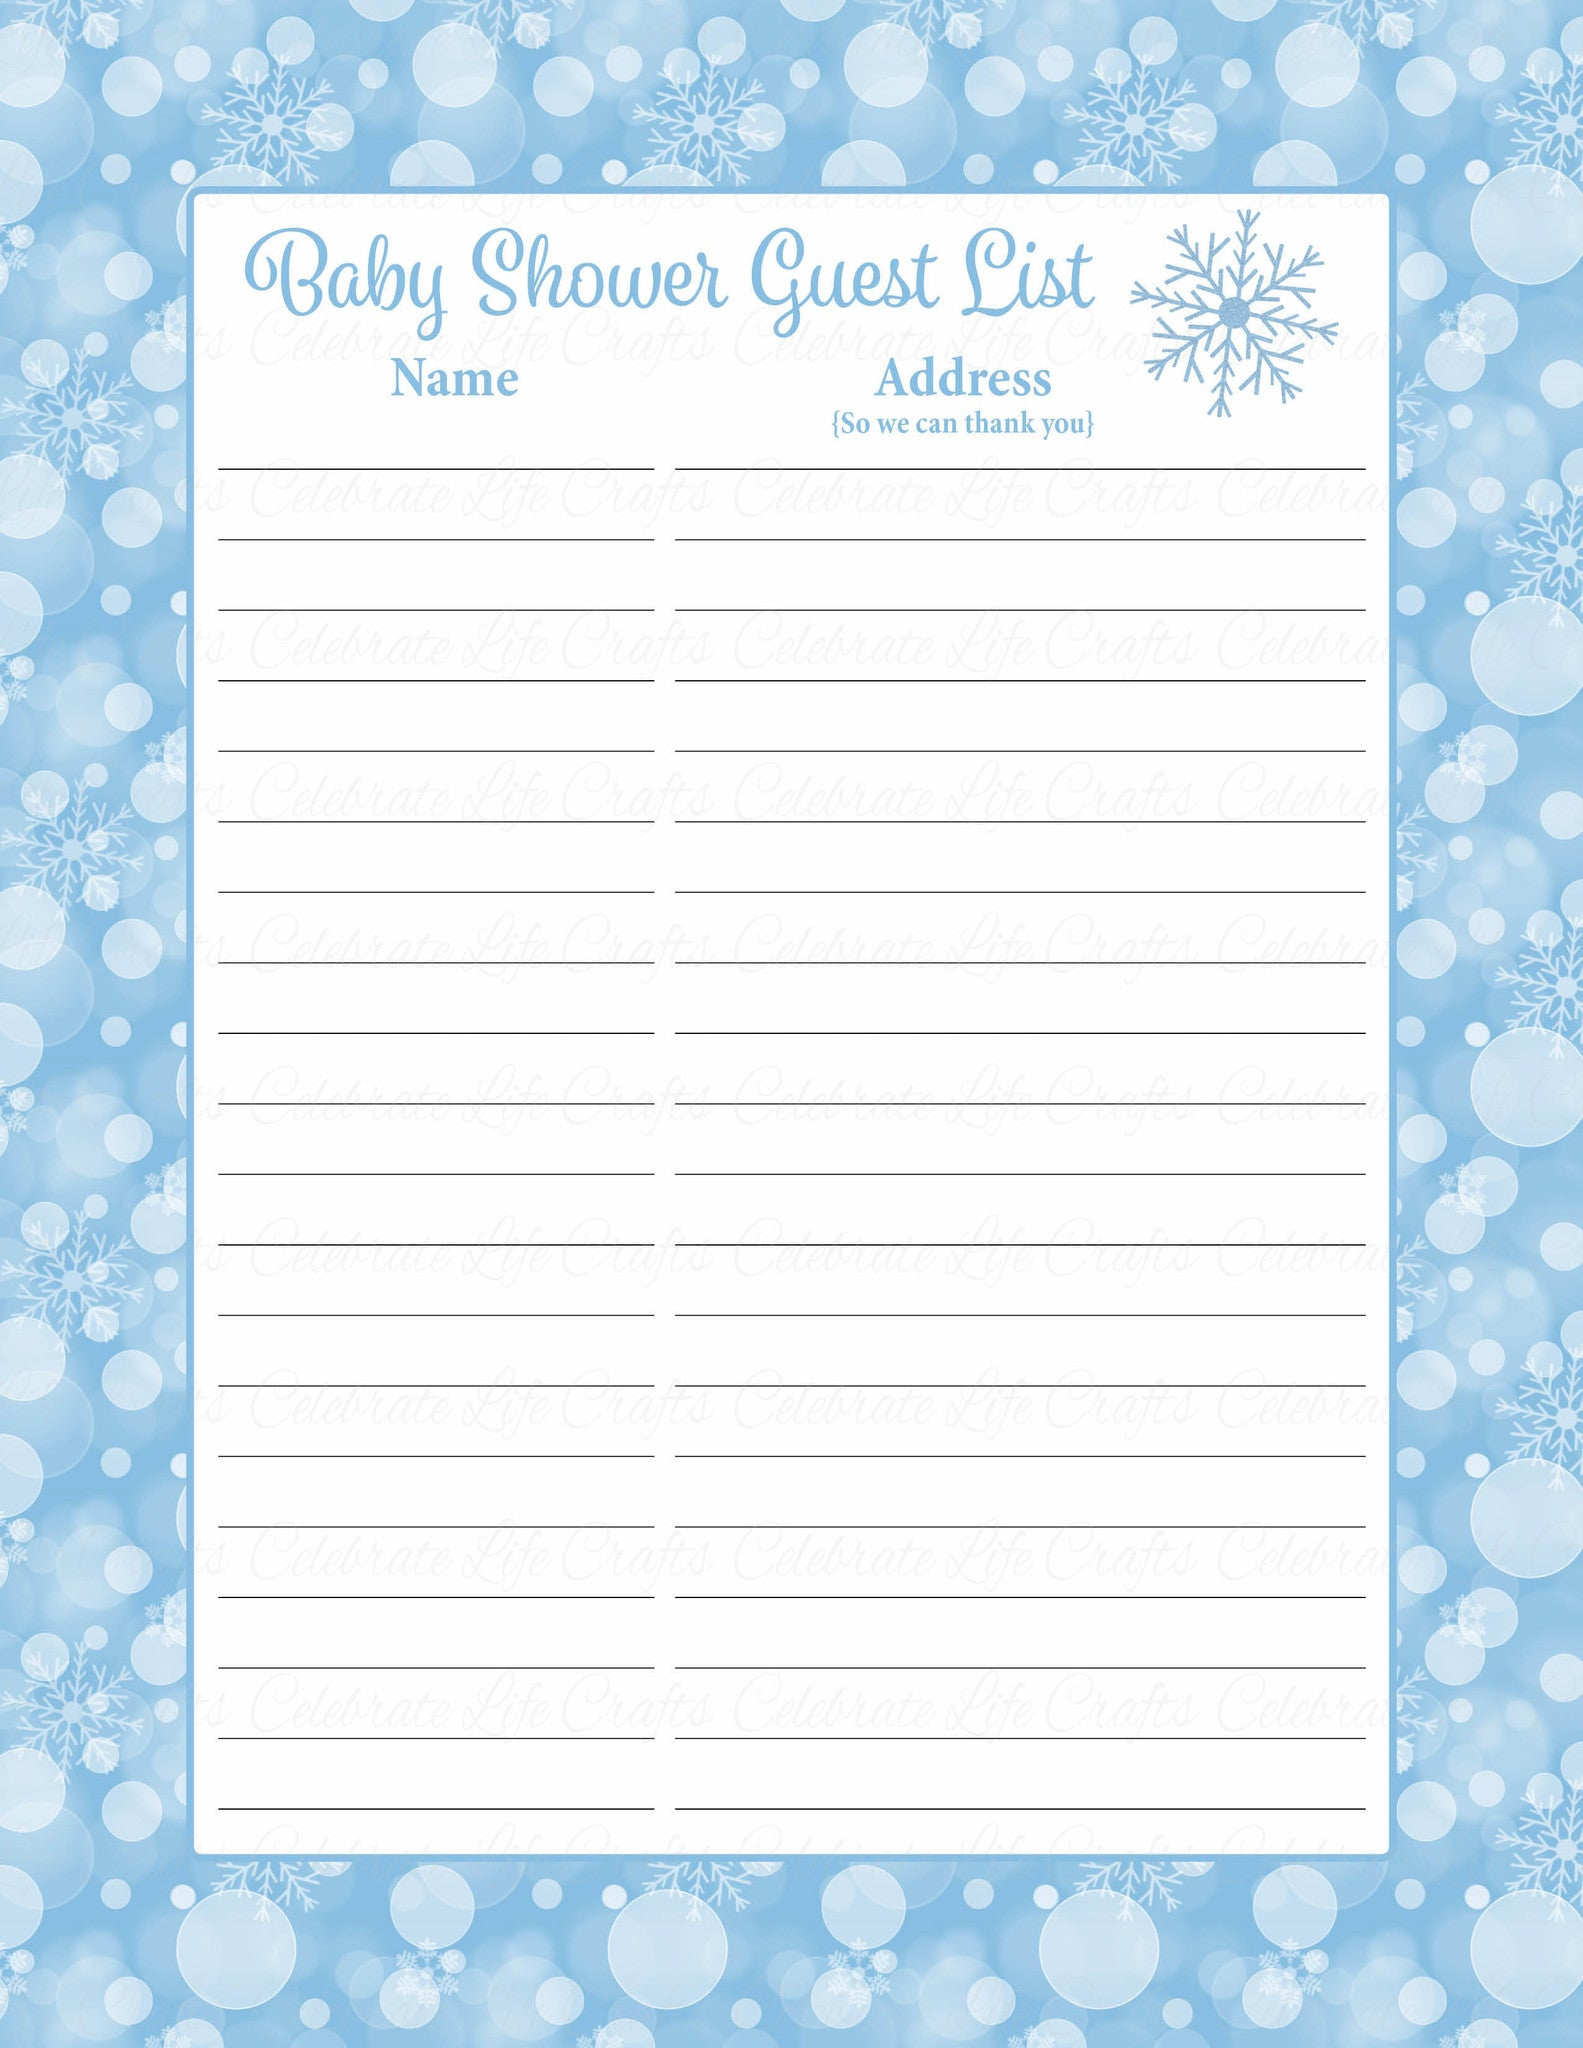 photograph about Baby Shower Sign in Sheet Printable titled Boy or girl Shower Visitor Record Mounted - Printable Obtain - Blue Bokeh Wintertime Boy or girl Shower Decorations - B22002